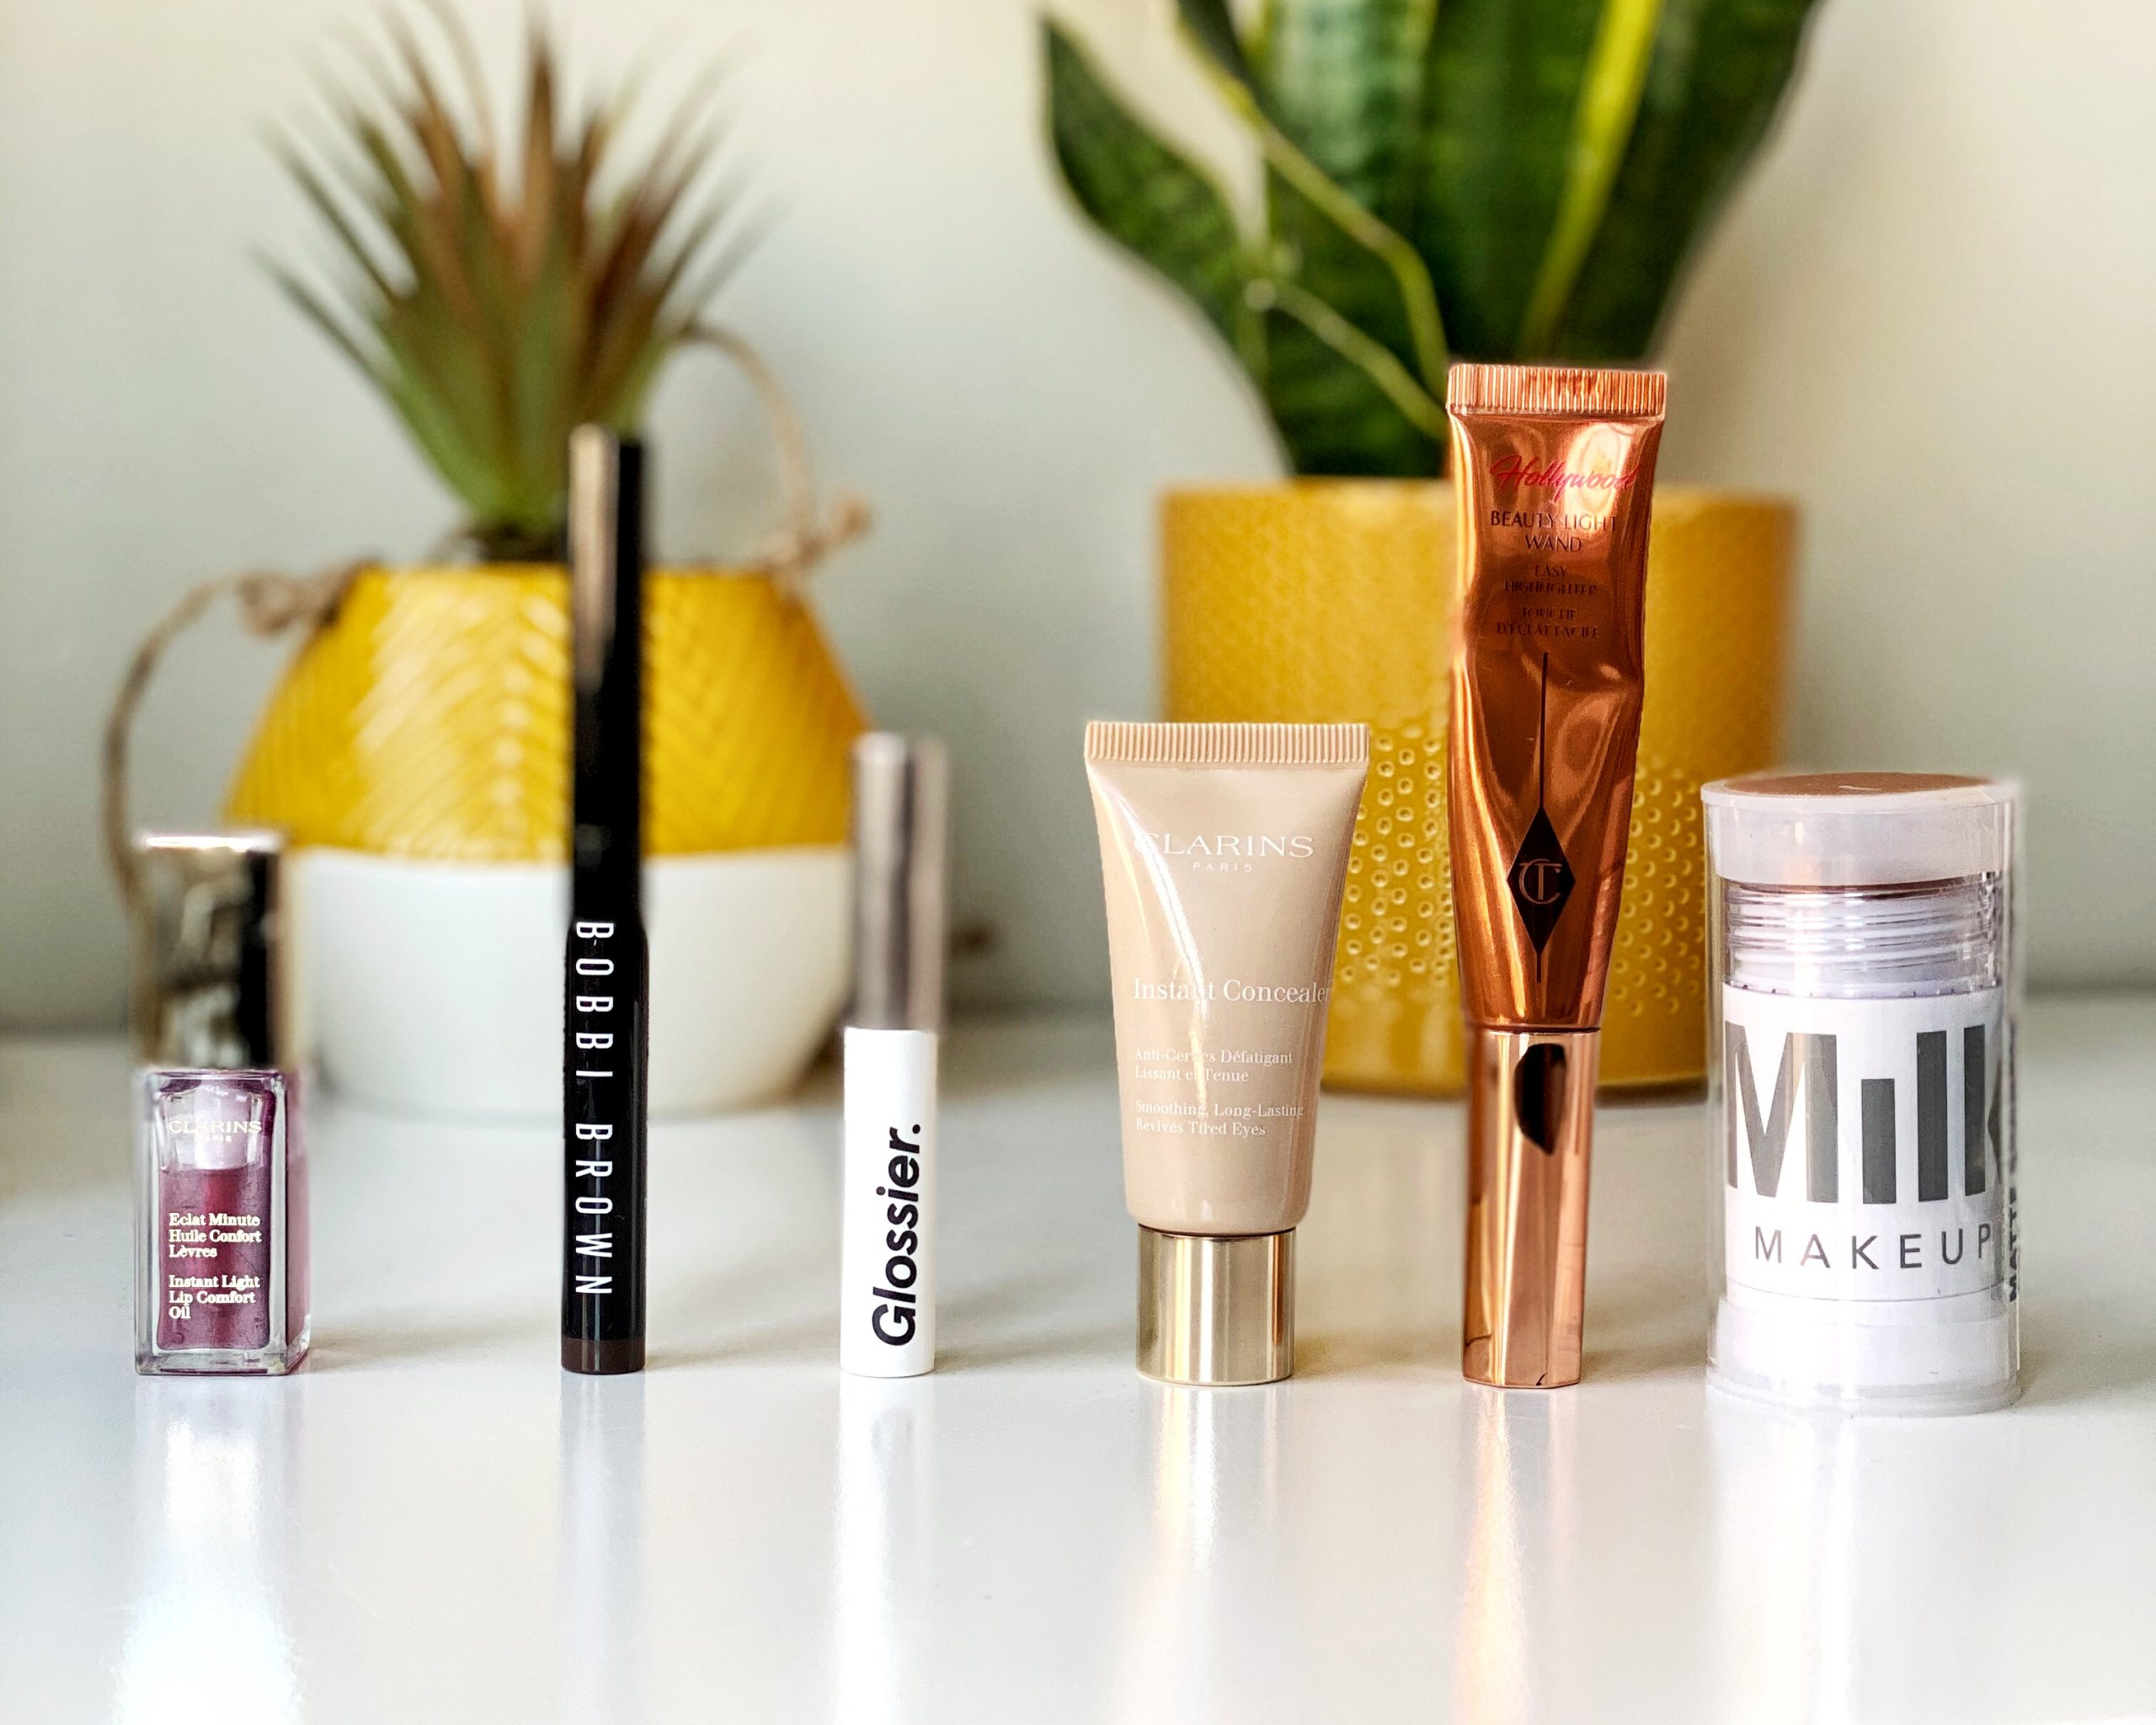 5 easy and quick makeup items for fool proof makeup! Claris, Bobbi Brown, Glossier, Clarins, Charlotte Tilbury and Milk makeup all take part in this post.